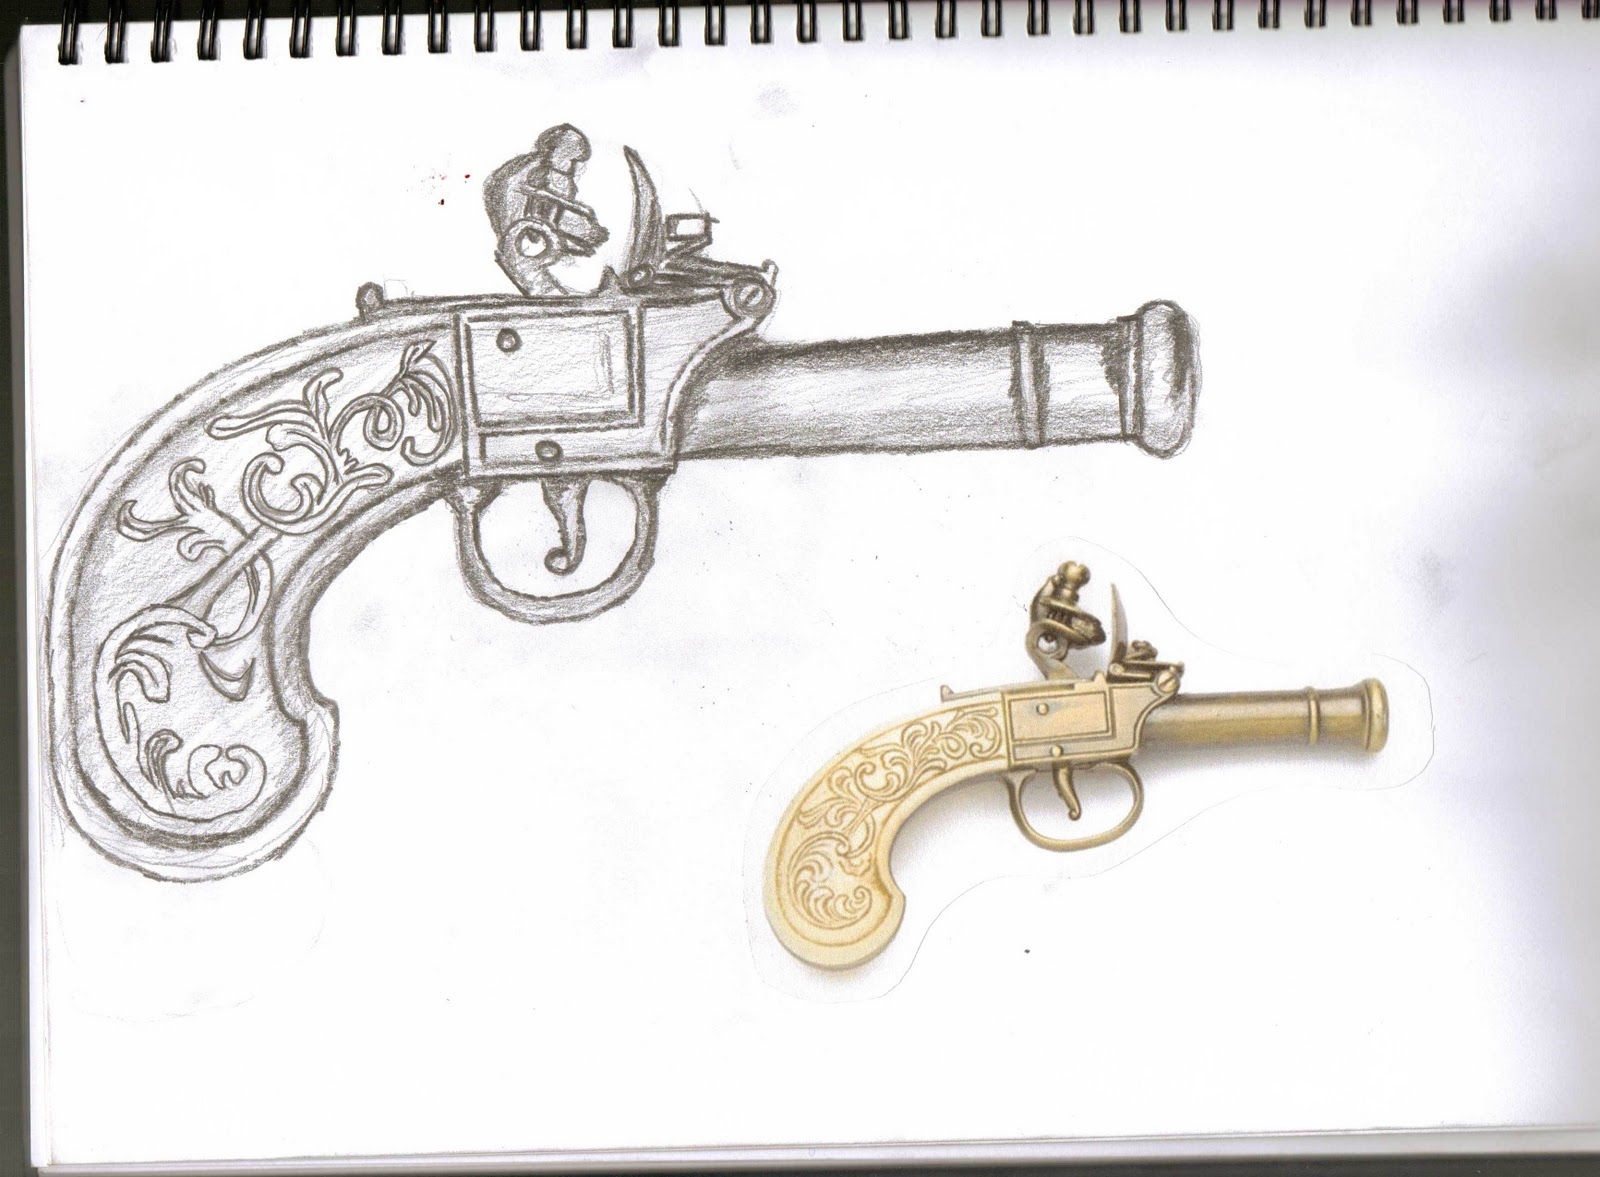 Drawn pistol old gun And and Drawing Shoe designs